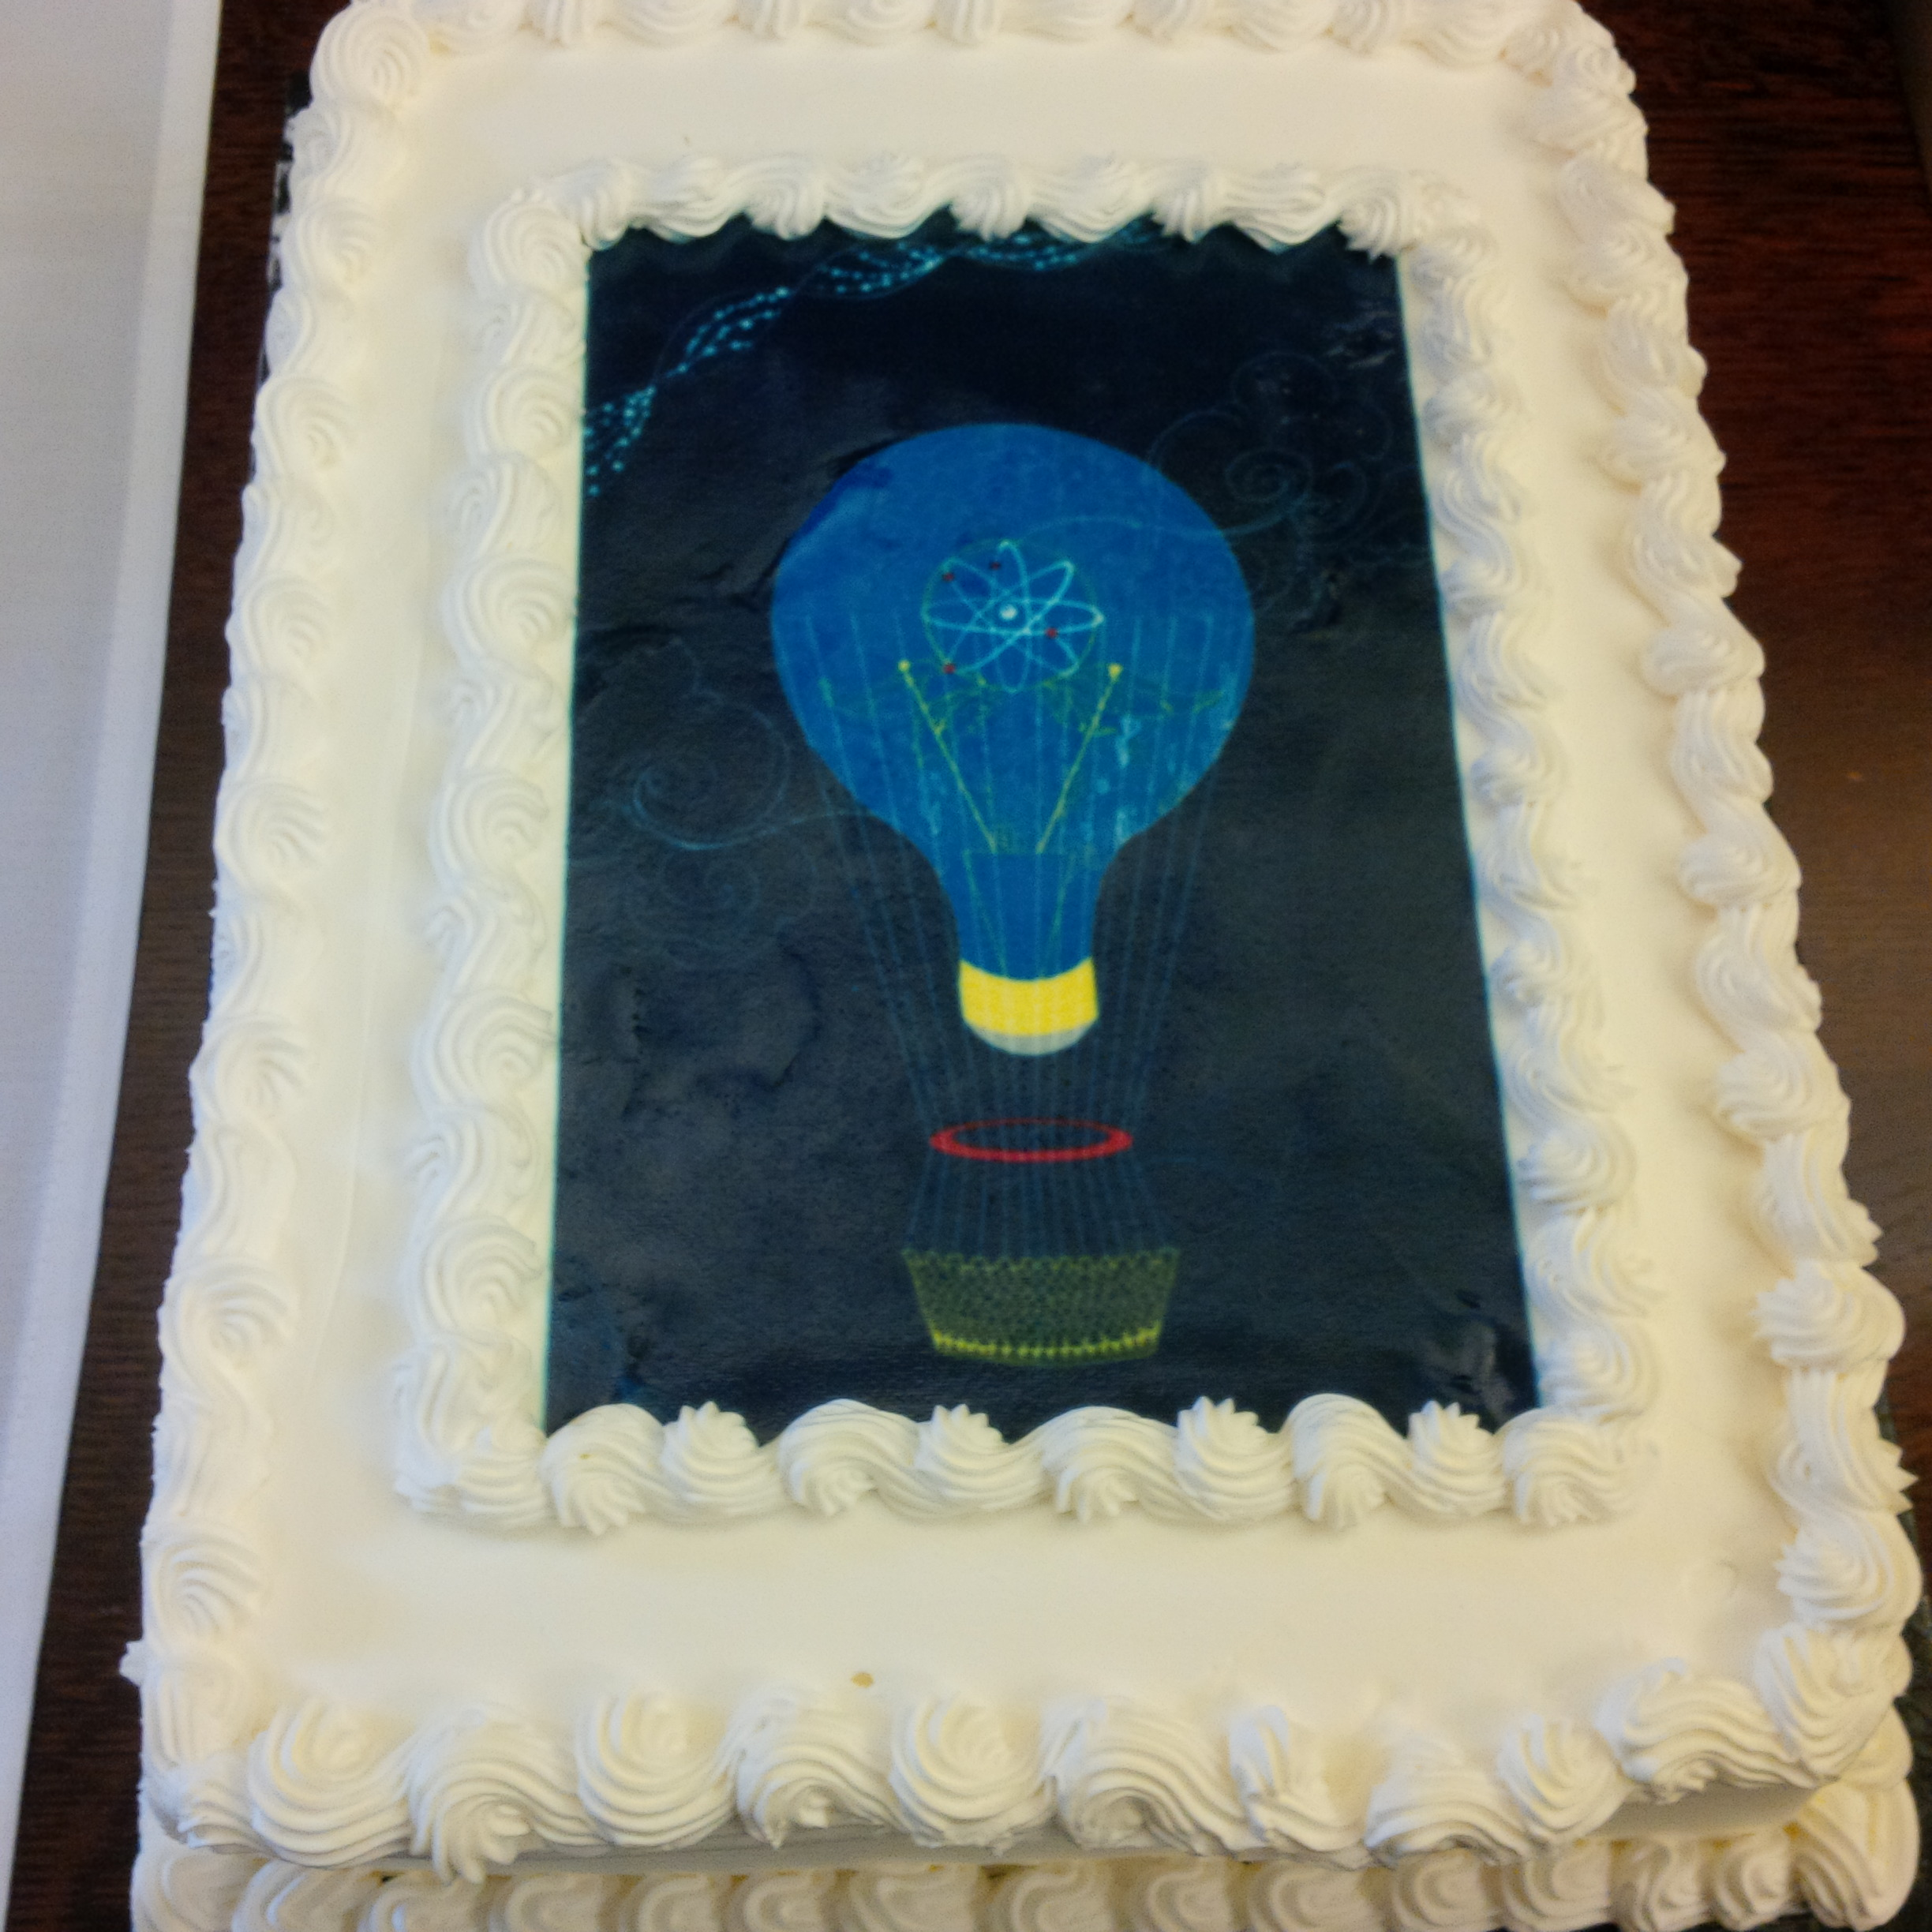 Cake with the winner's design